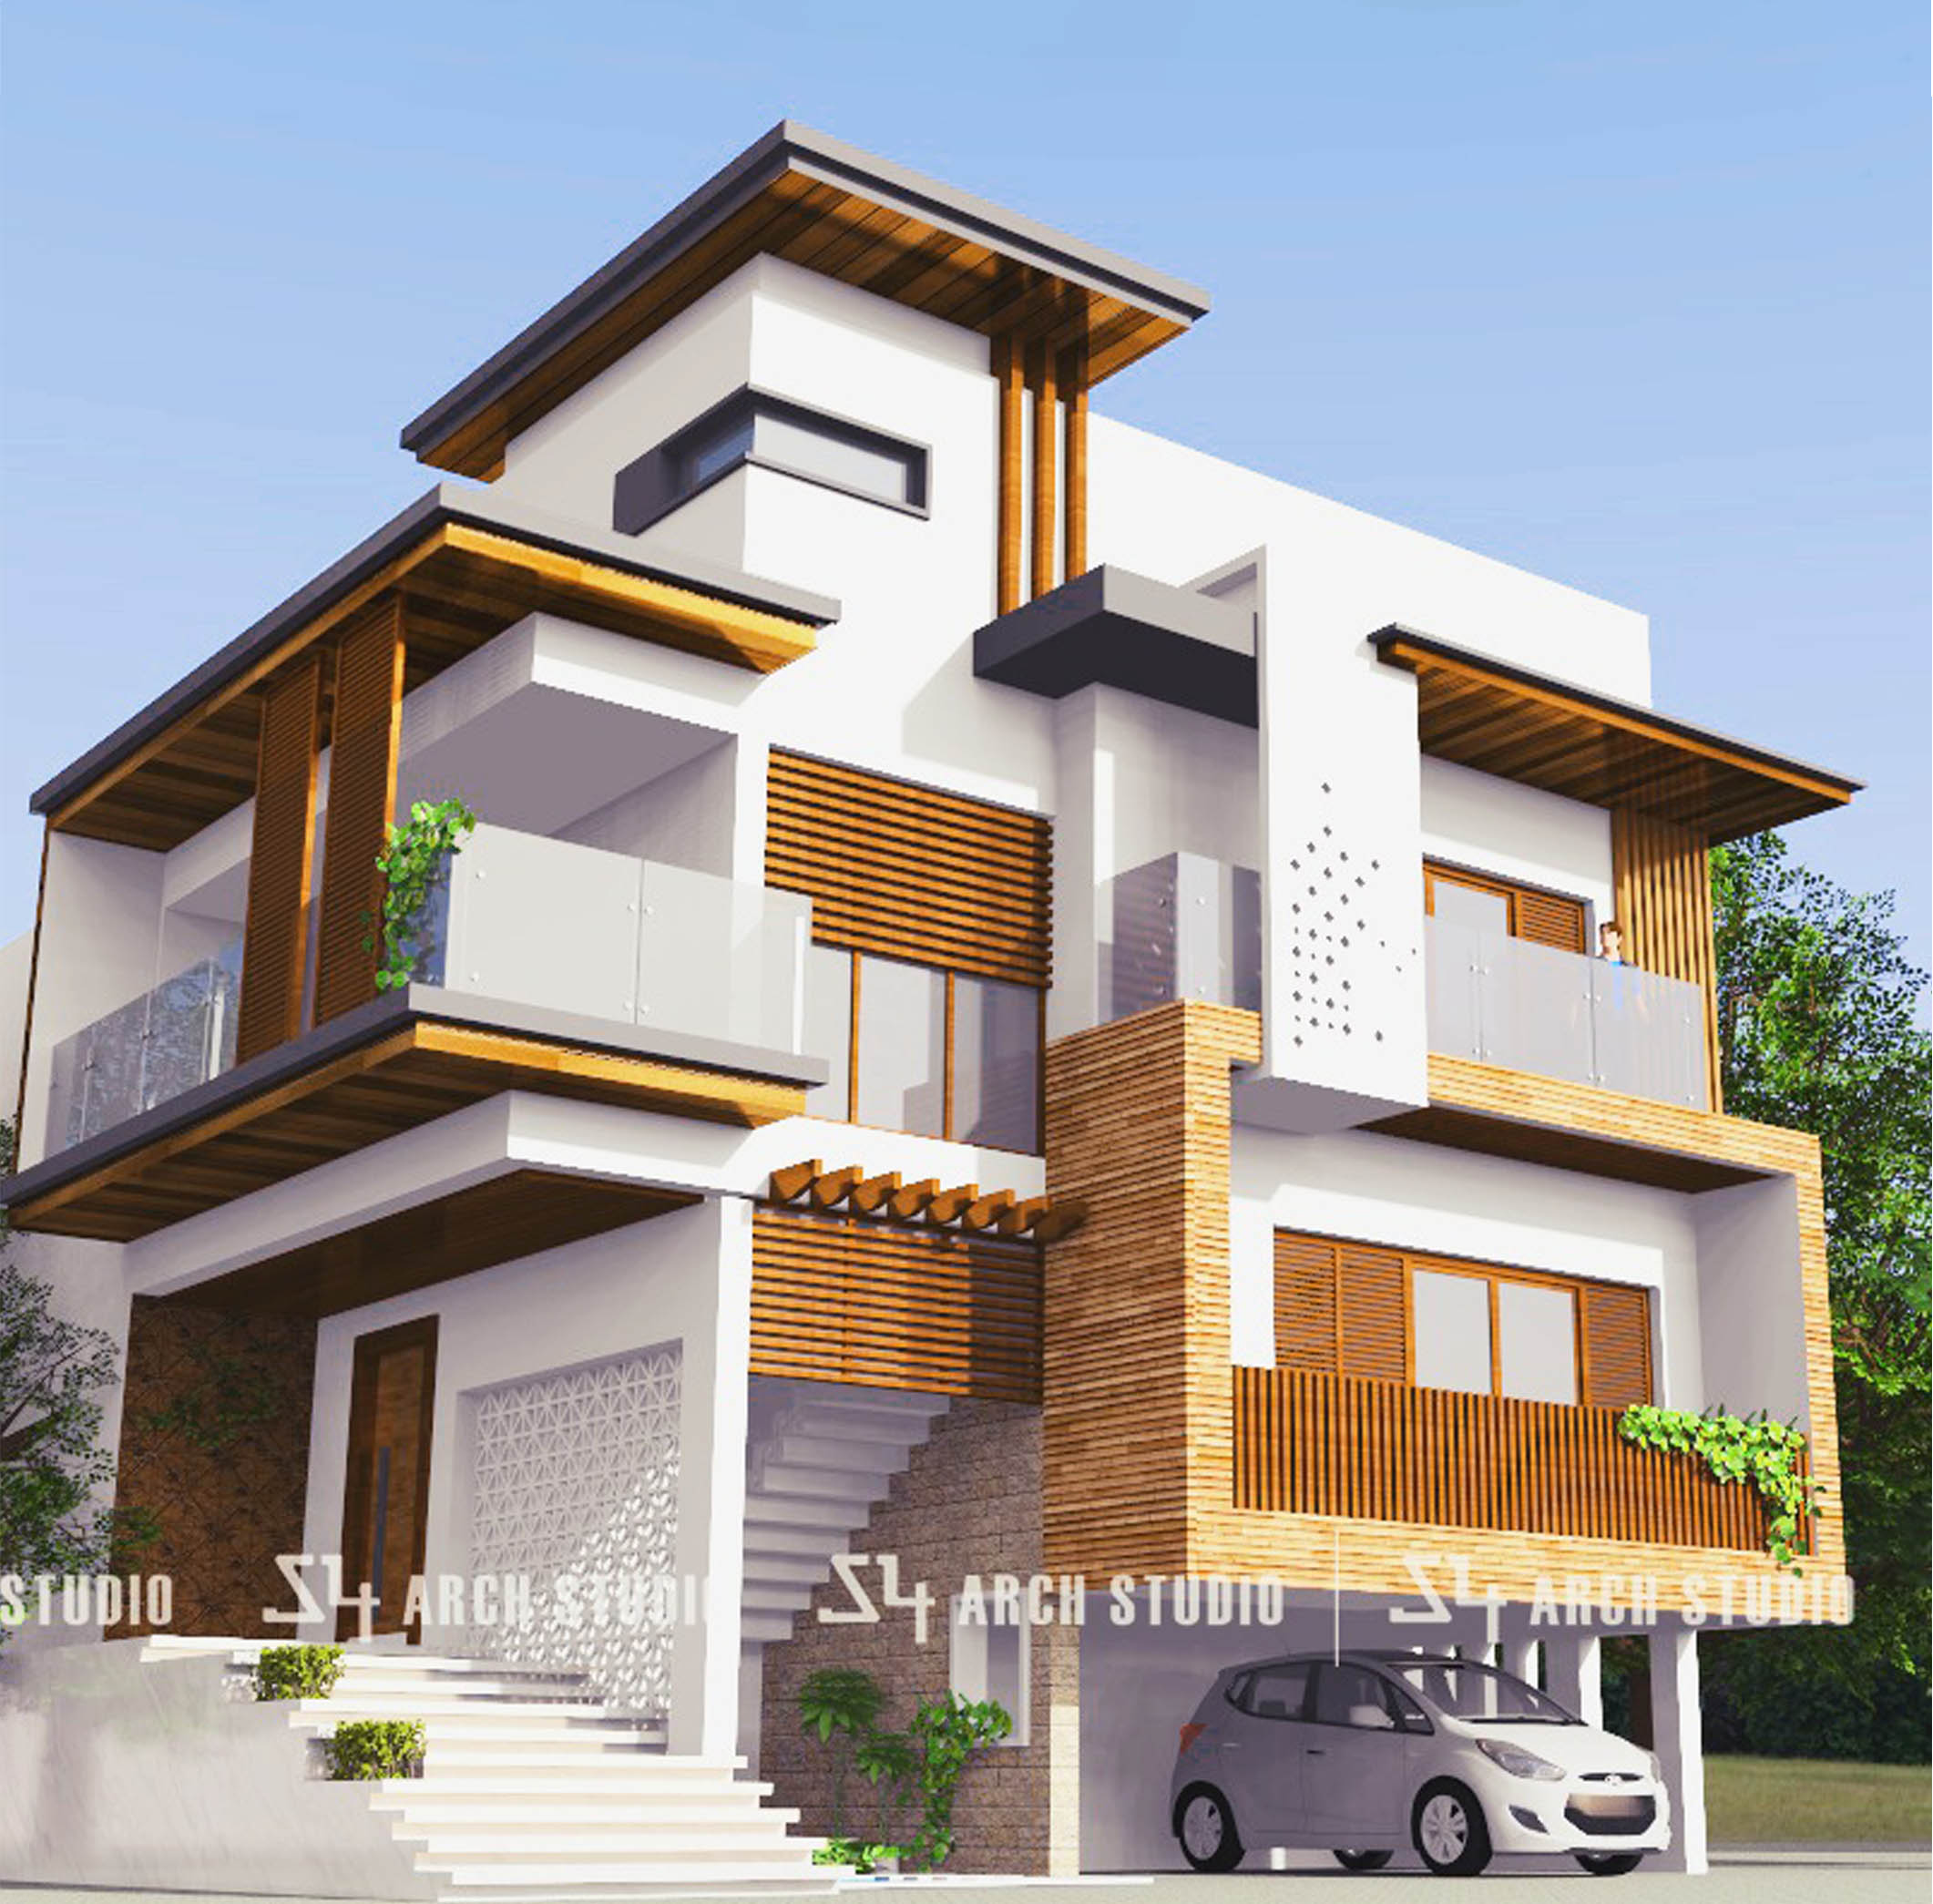 Modern-house-design-S4-Arch-Studio-Architects-in-bangalore-and-mangalore